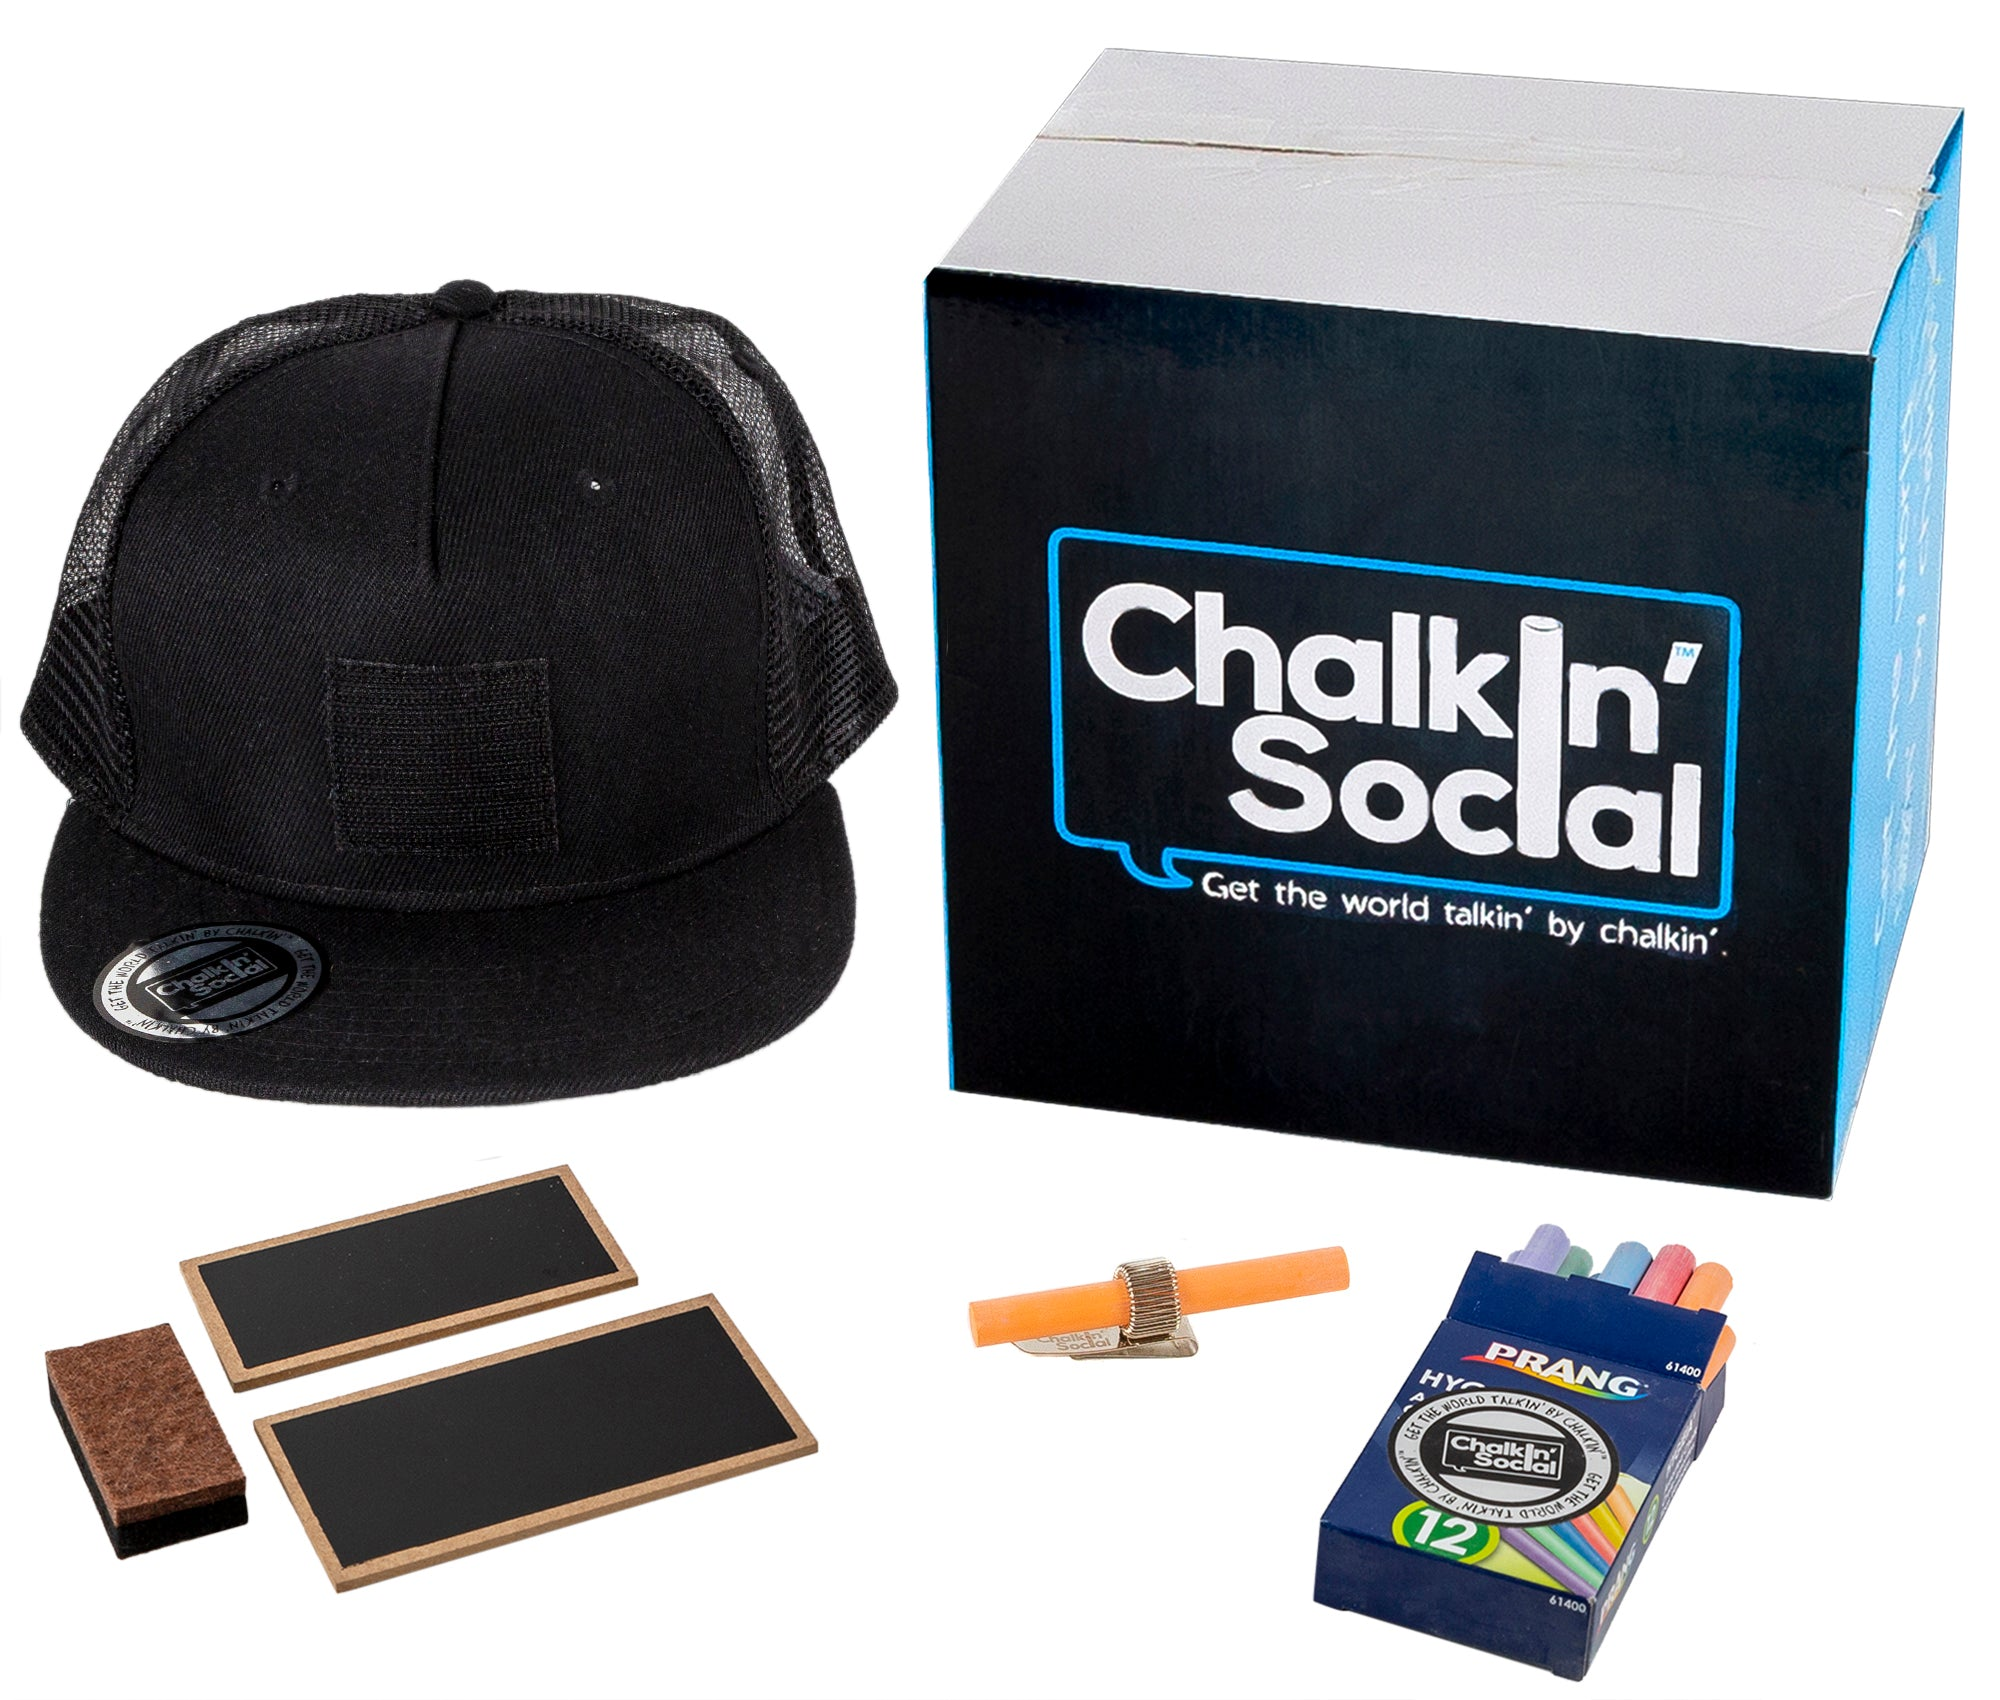 f538e4729f2 Social hipster black chalkboard hat and accessories jpg 2000x1700 Hipster  hat